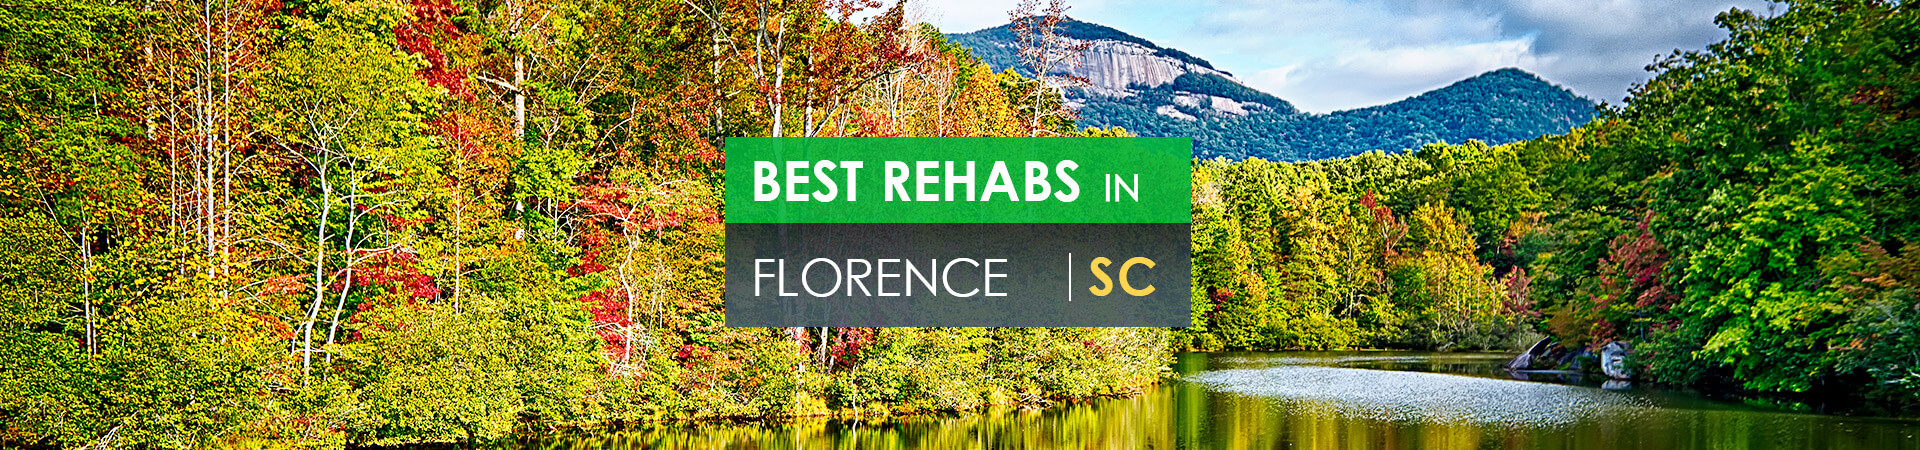 Best rehabs in Florence, SC